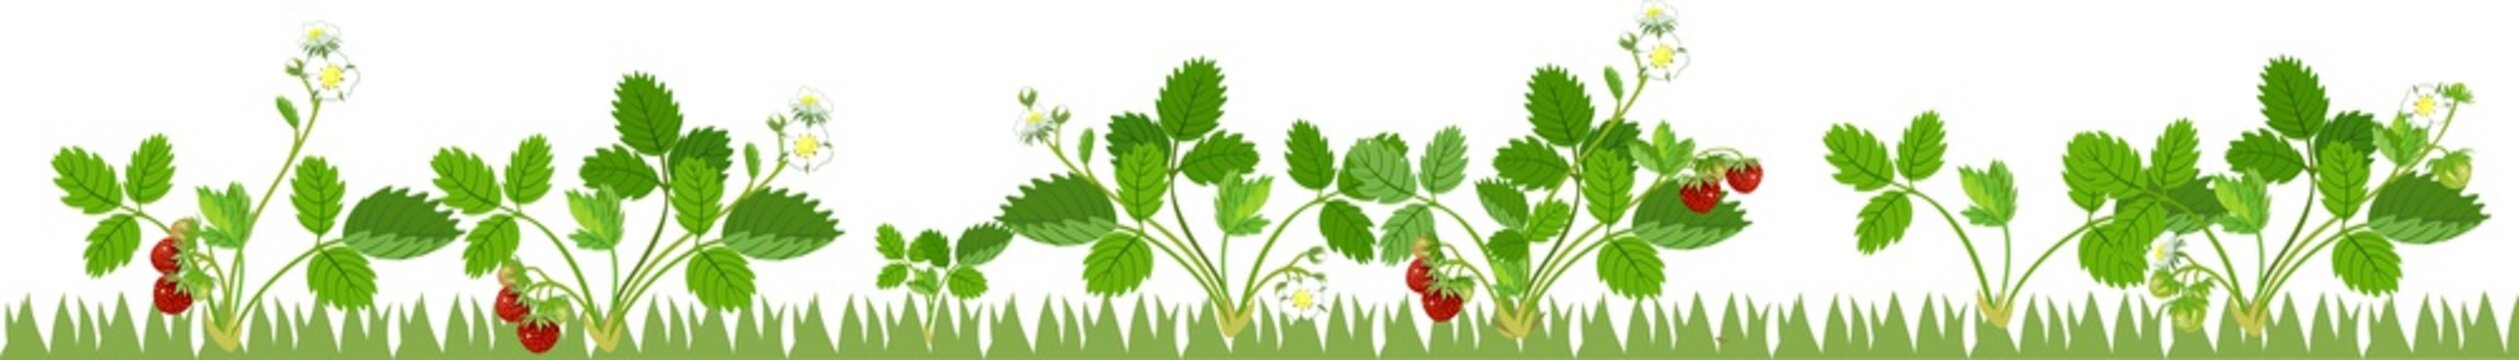 Vegetable patch with fruiting and flowering strawberry plants on white background